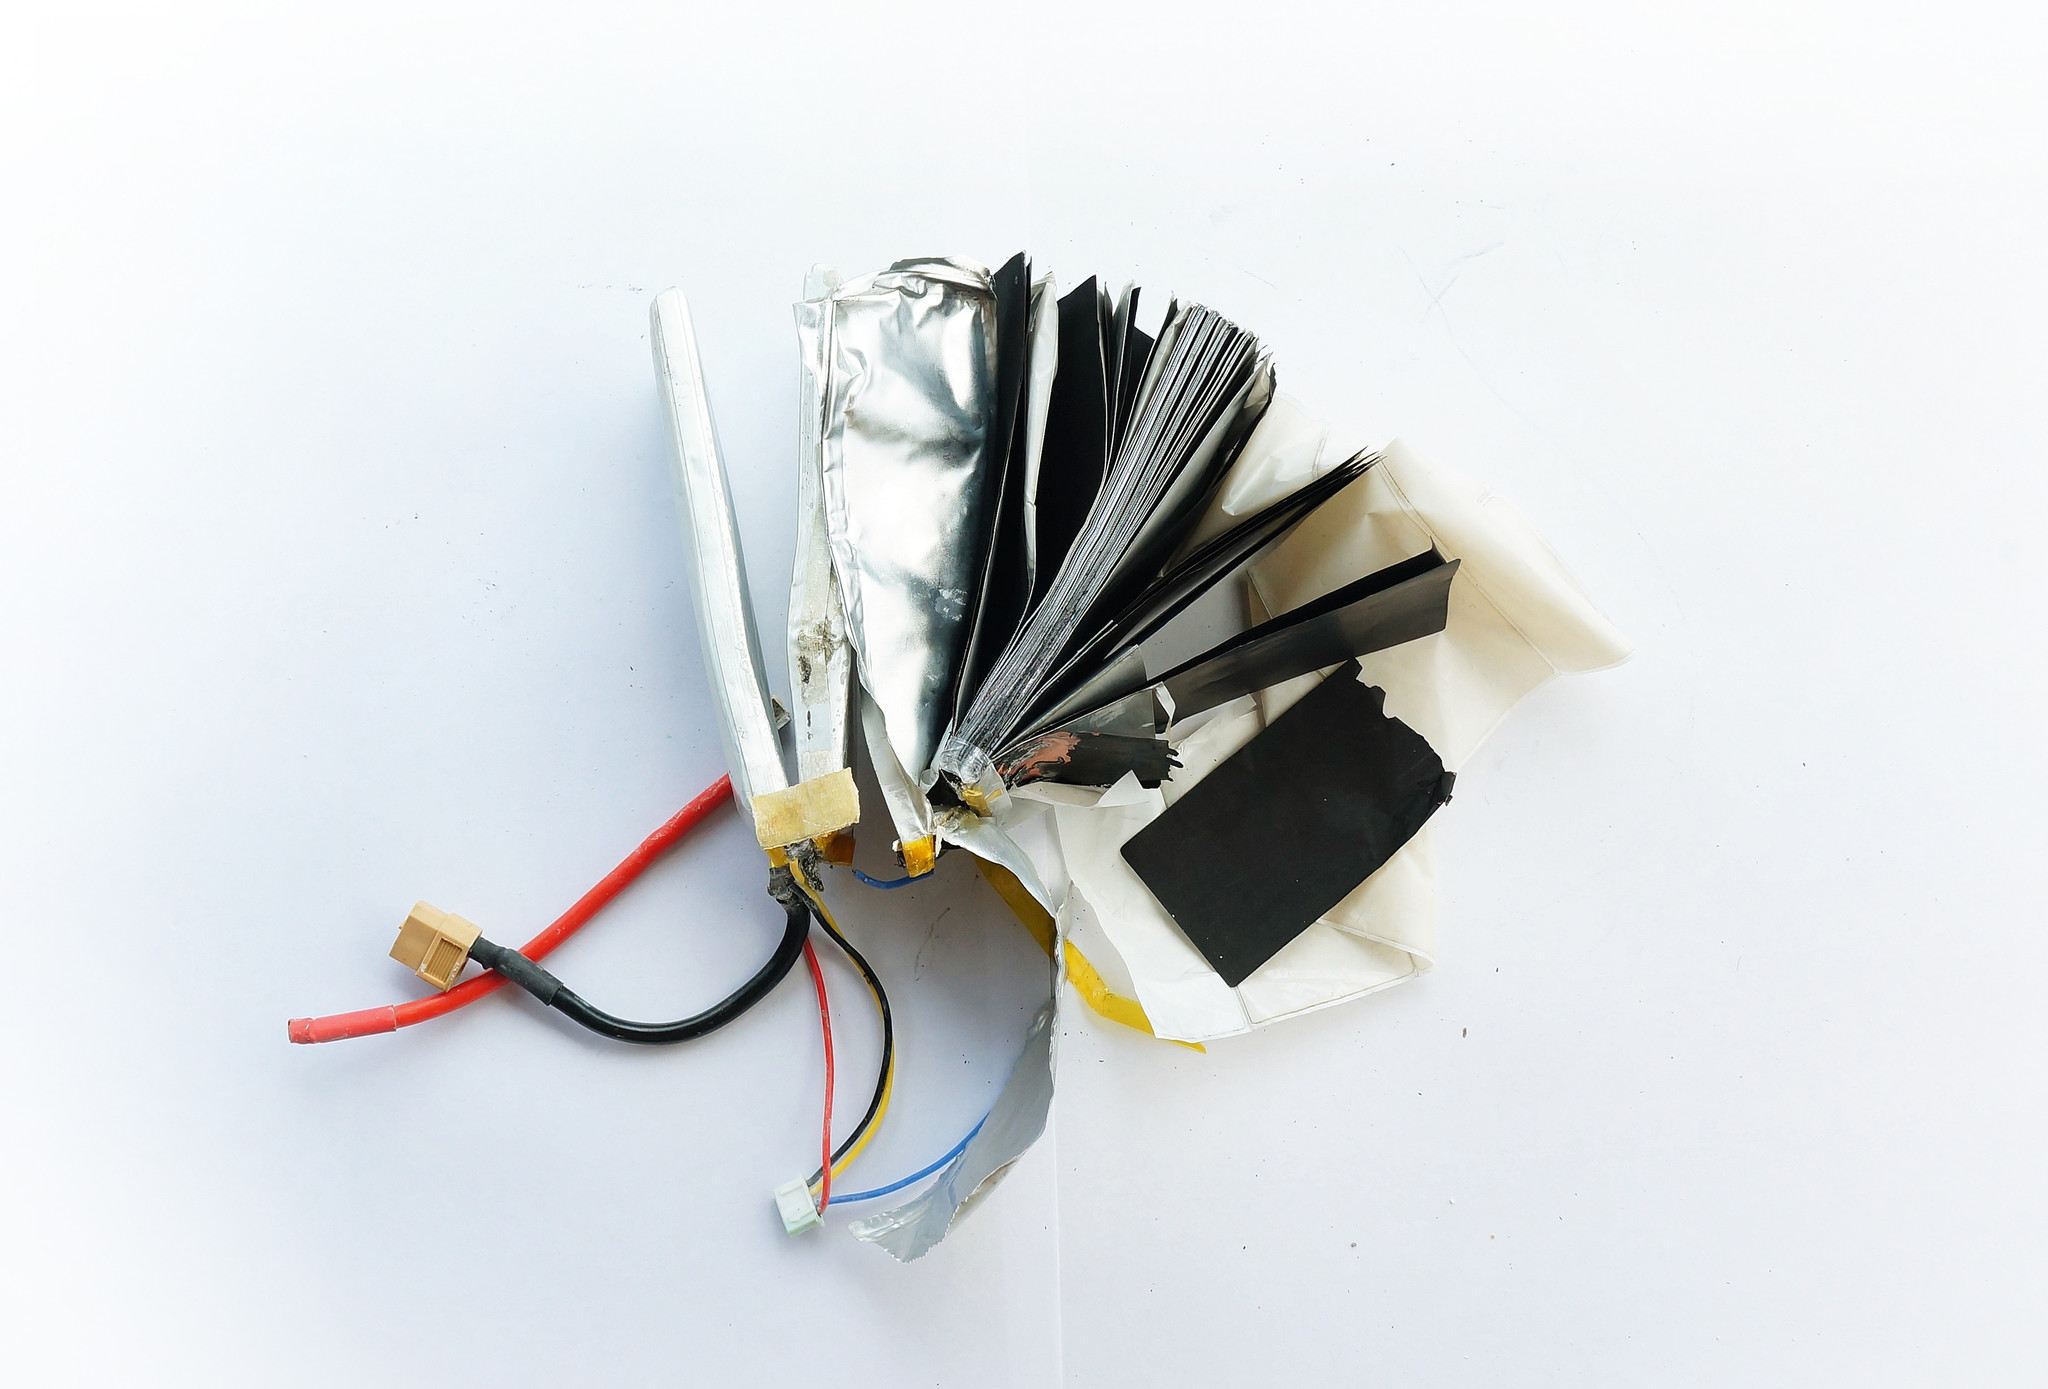 7 Safety Tips Every RC ( Remote Control )  LiPo Battery User Should Know